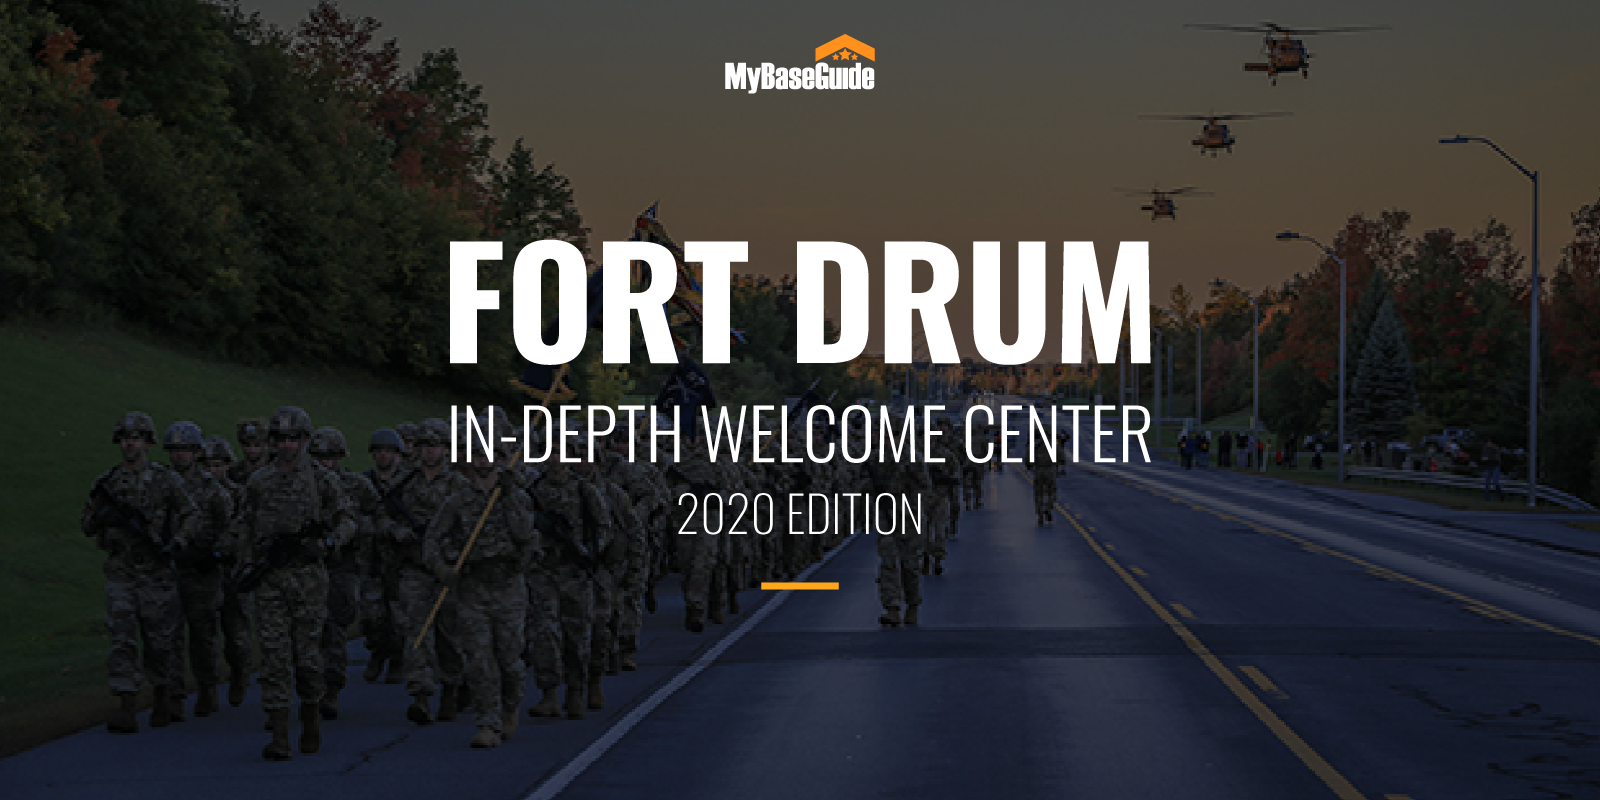 Fort Drum: In-Depth Welcome Center (2020 Edition)